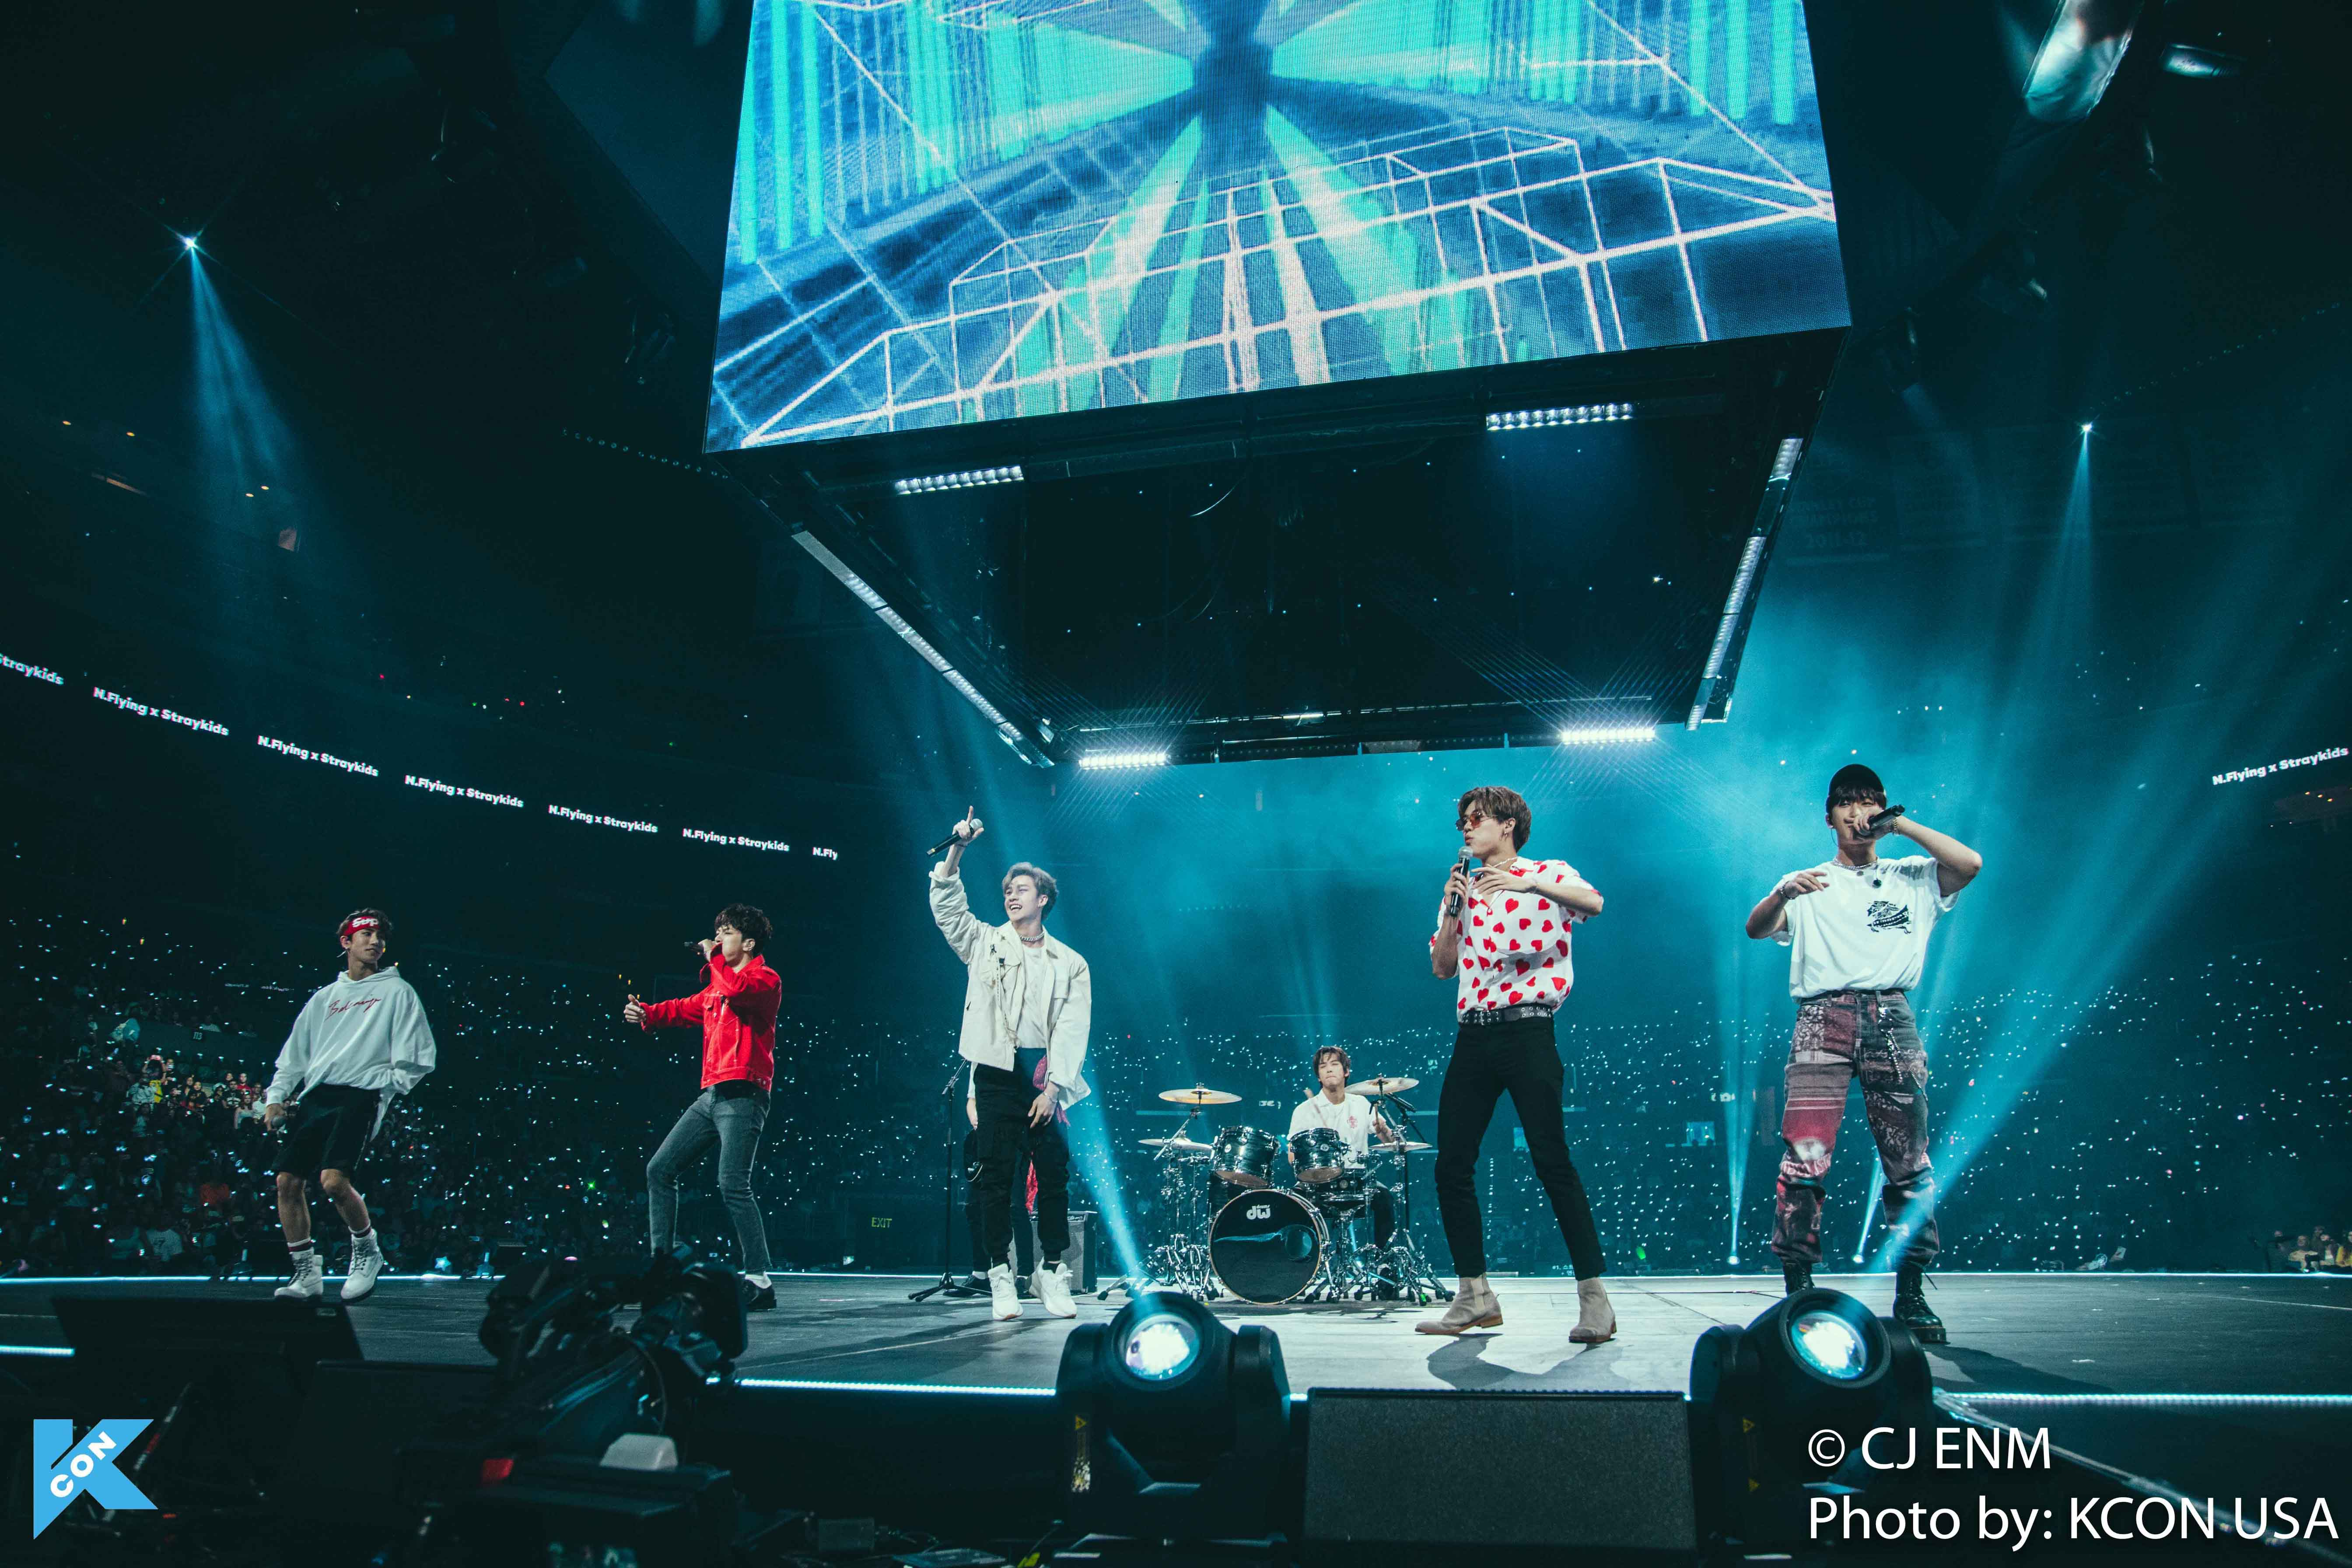 KCON LOS ANGELES 2019 NFLYING-5